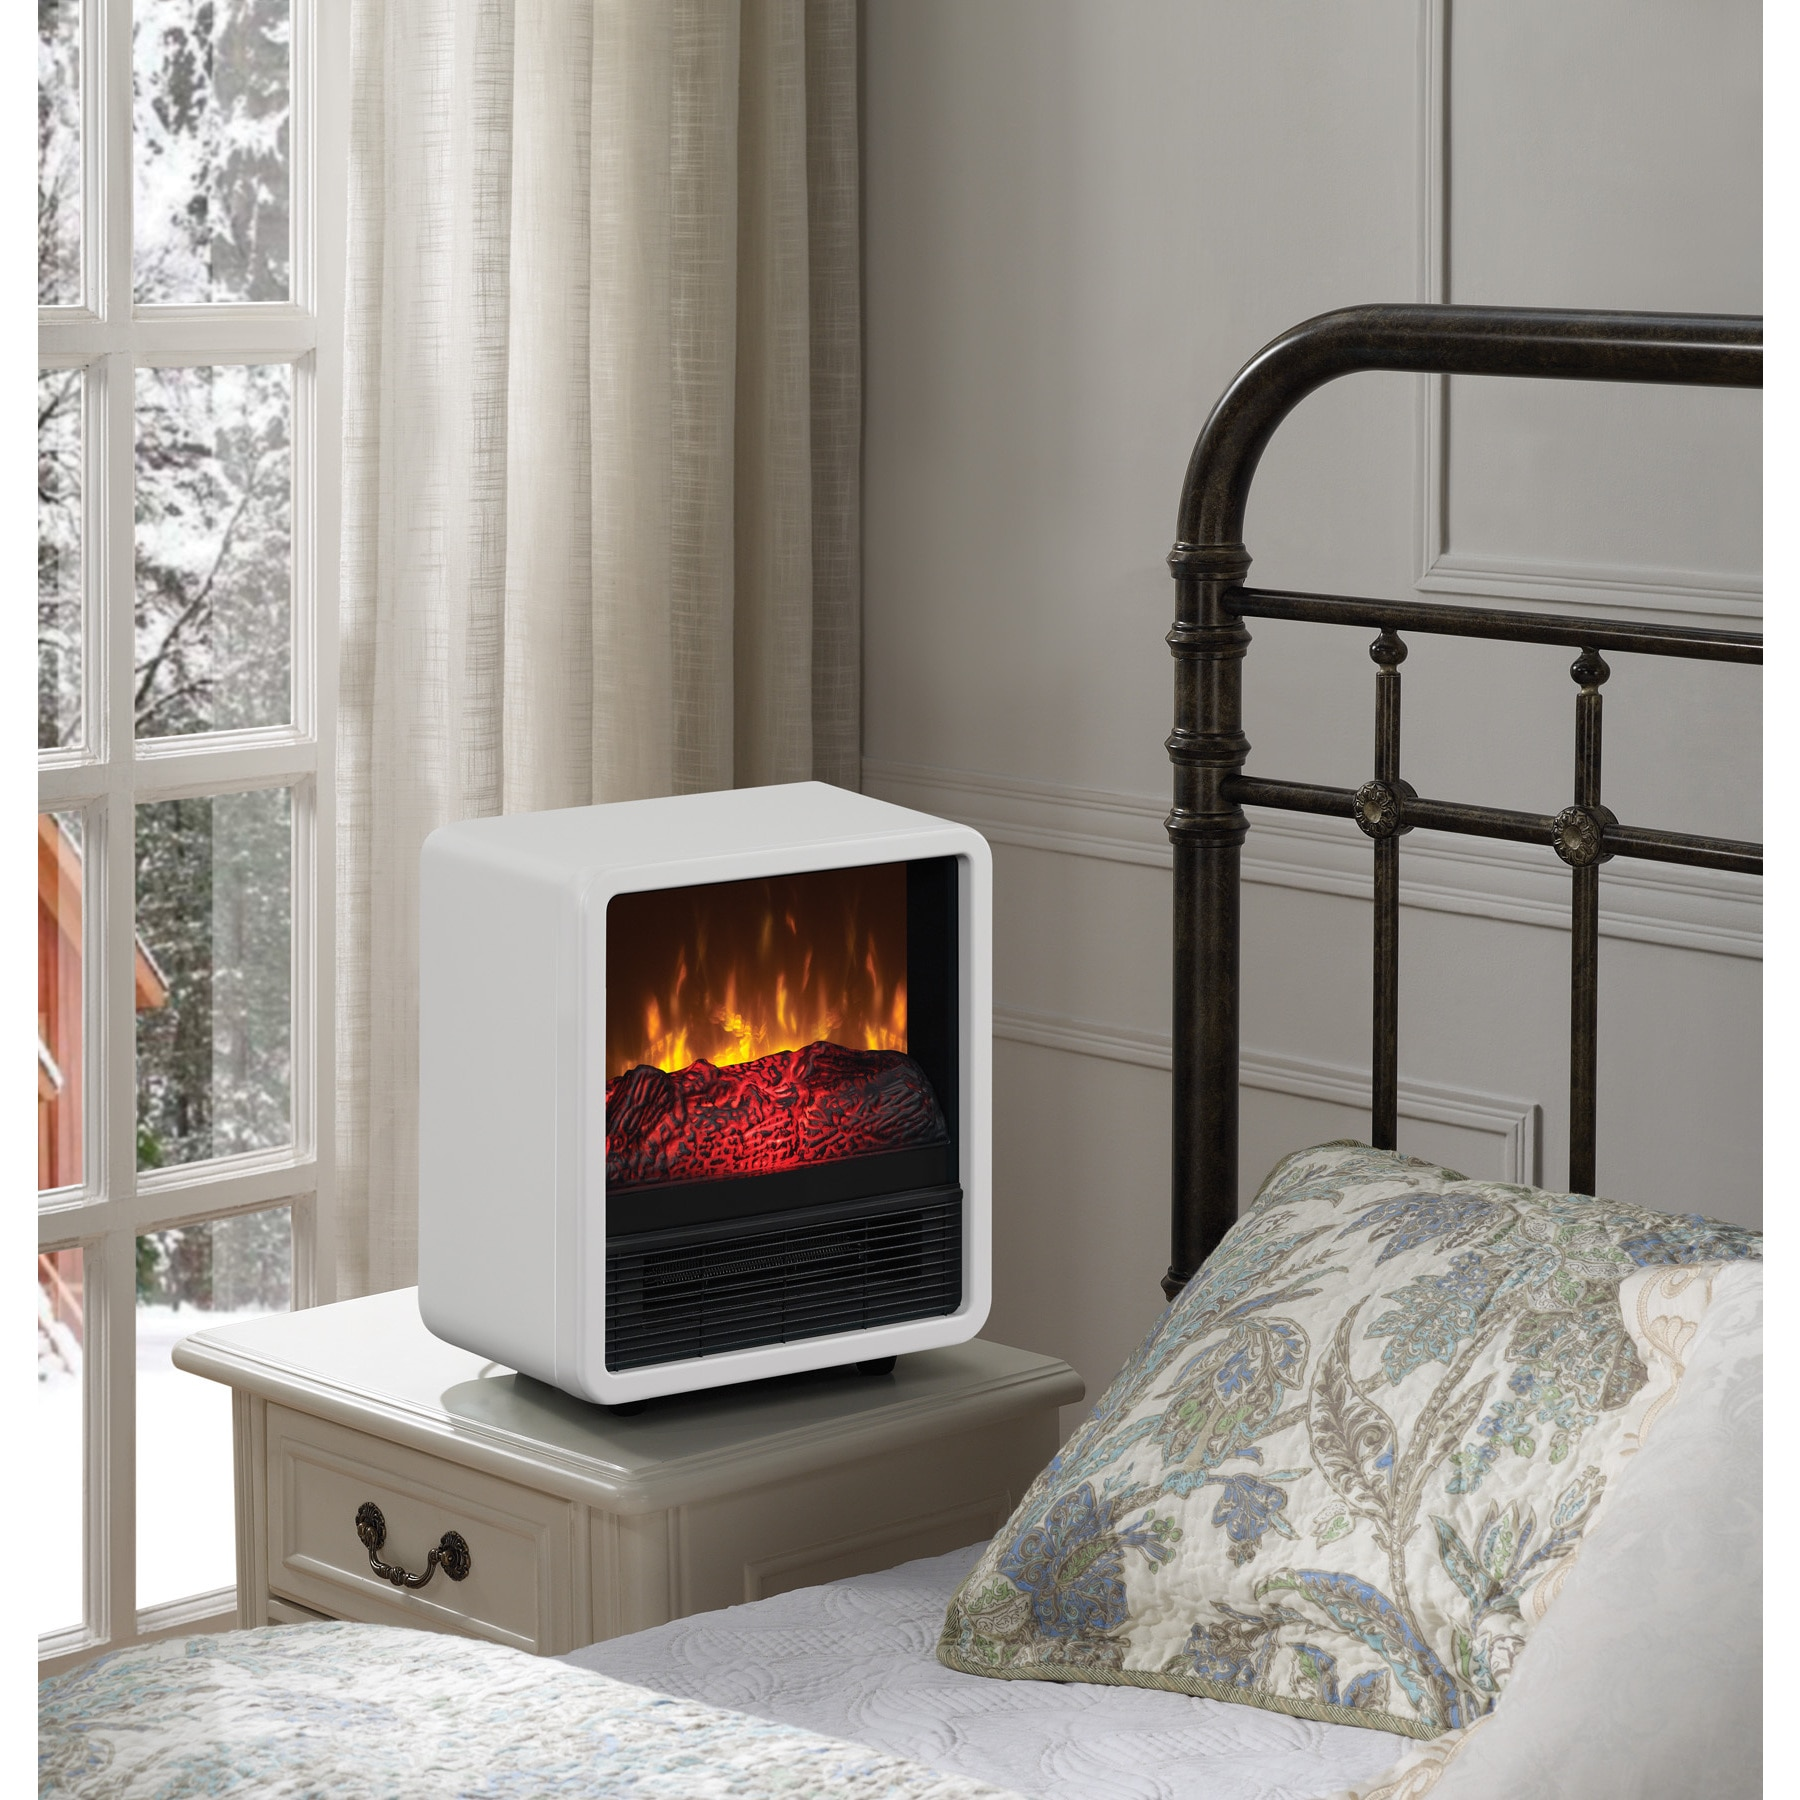 duraflame personal fire cube electric heater fireplace white